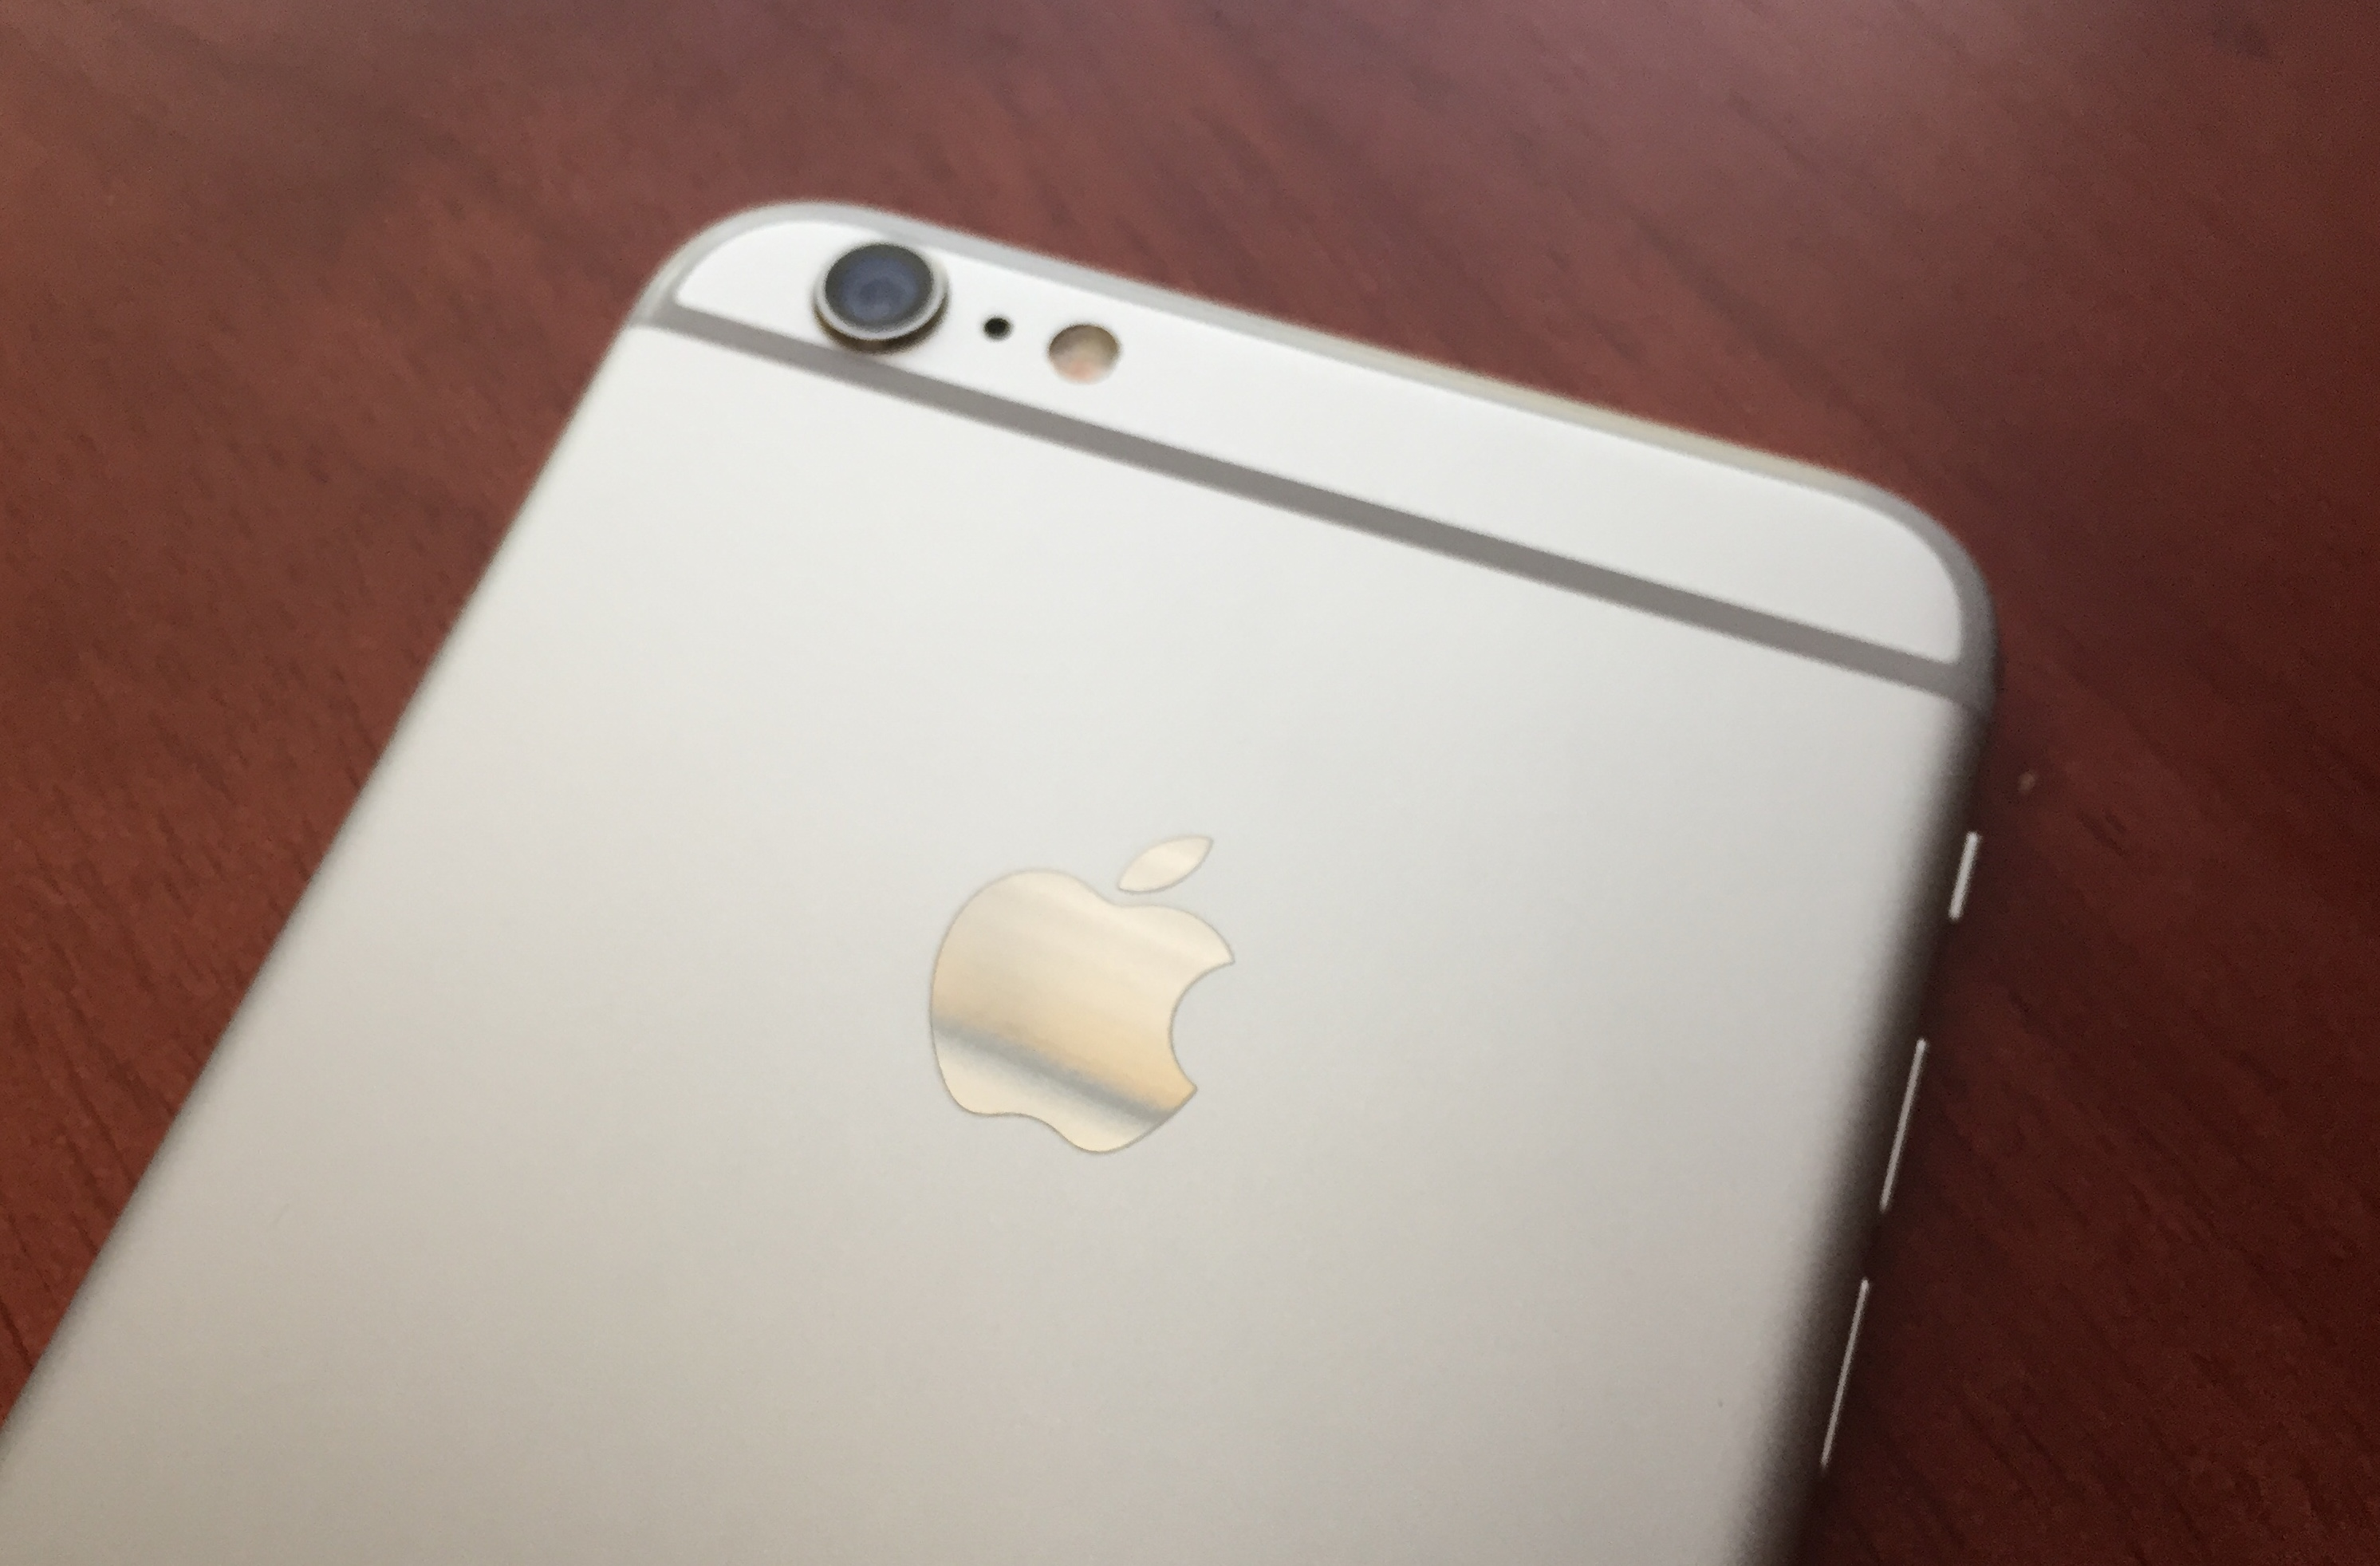 Most users can install iOS 8.0.2 without worrying.